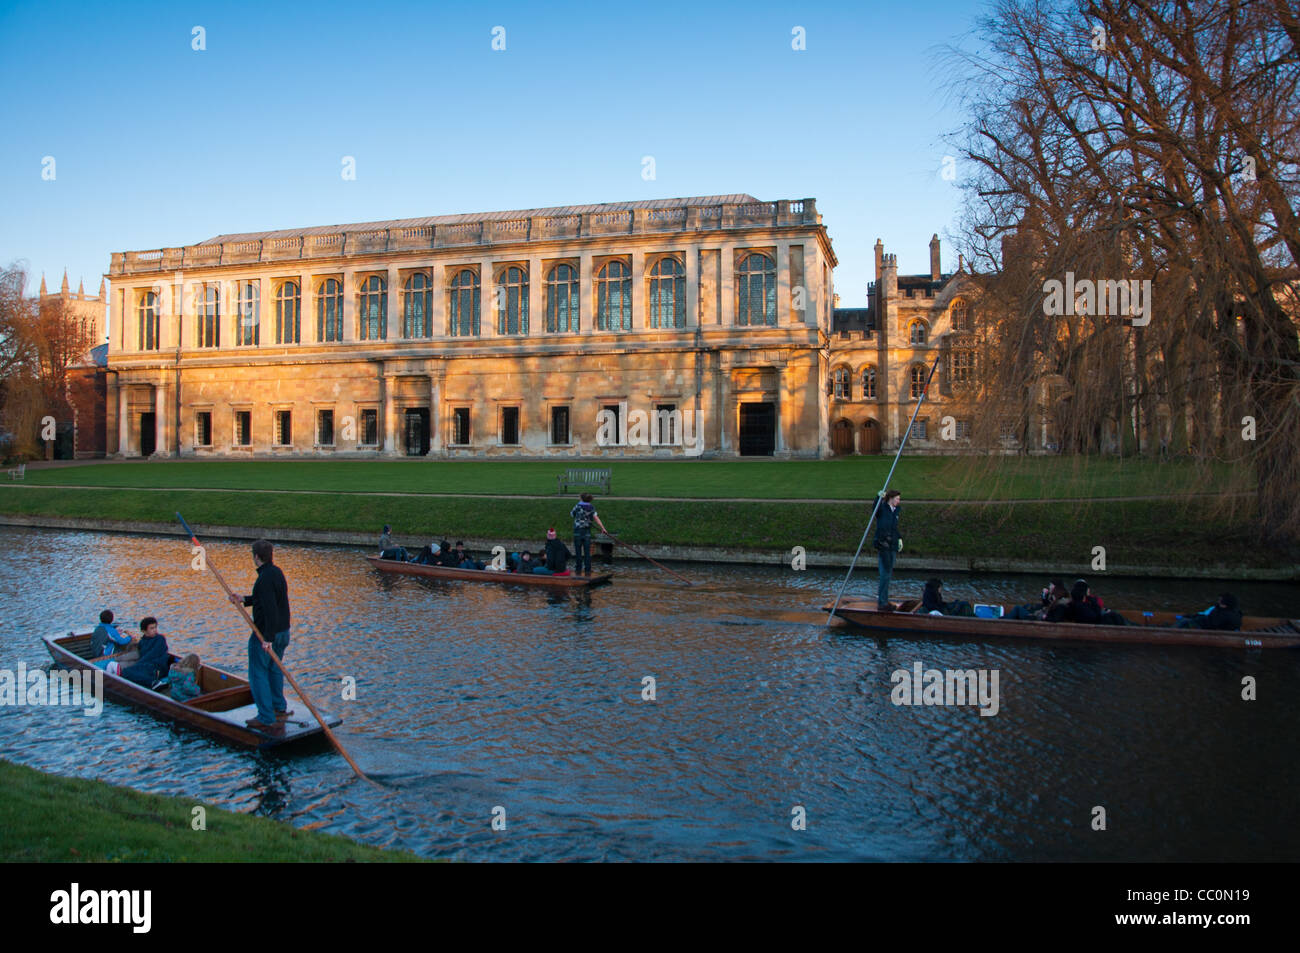 The Wren Library at sunset, Trinity College Cambridge, with punting in front on the river Cam, UK - Stock Image